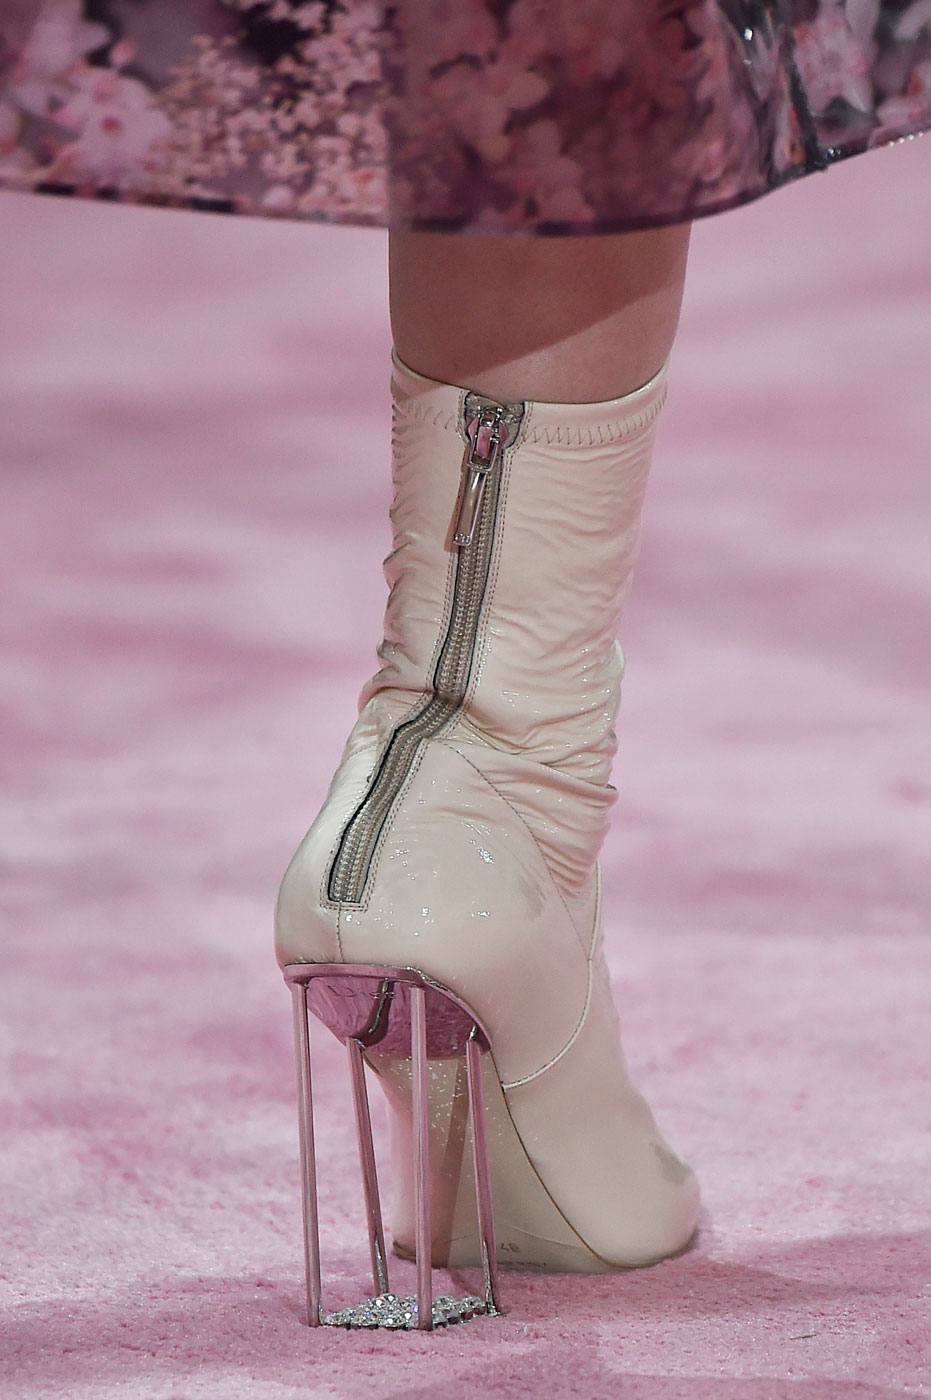 Christian-Dior-fashion-runway-show-close-ups-haute-couture-paris-spring-summer-2015-the-impression-076